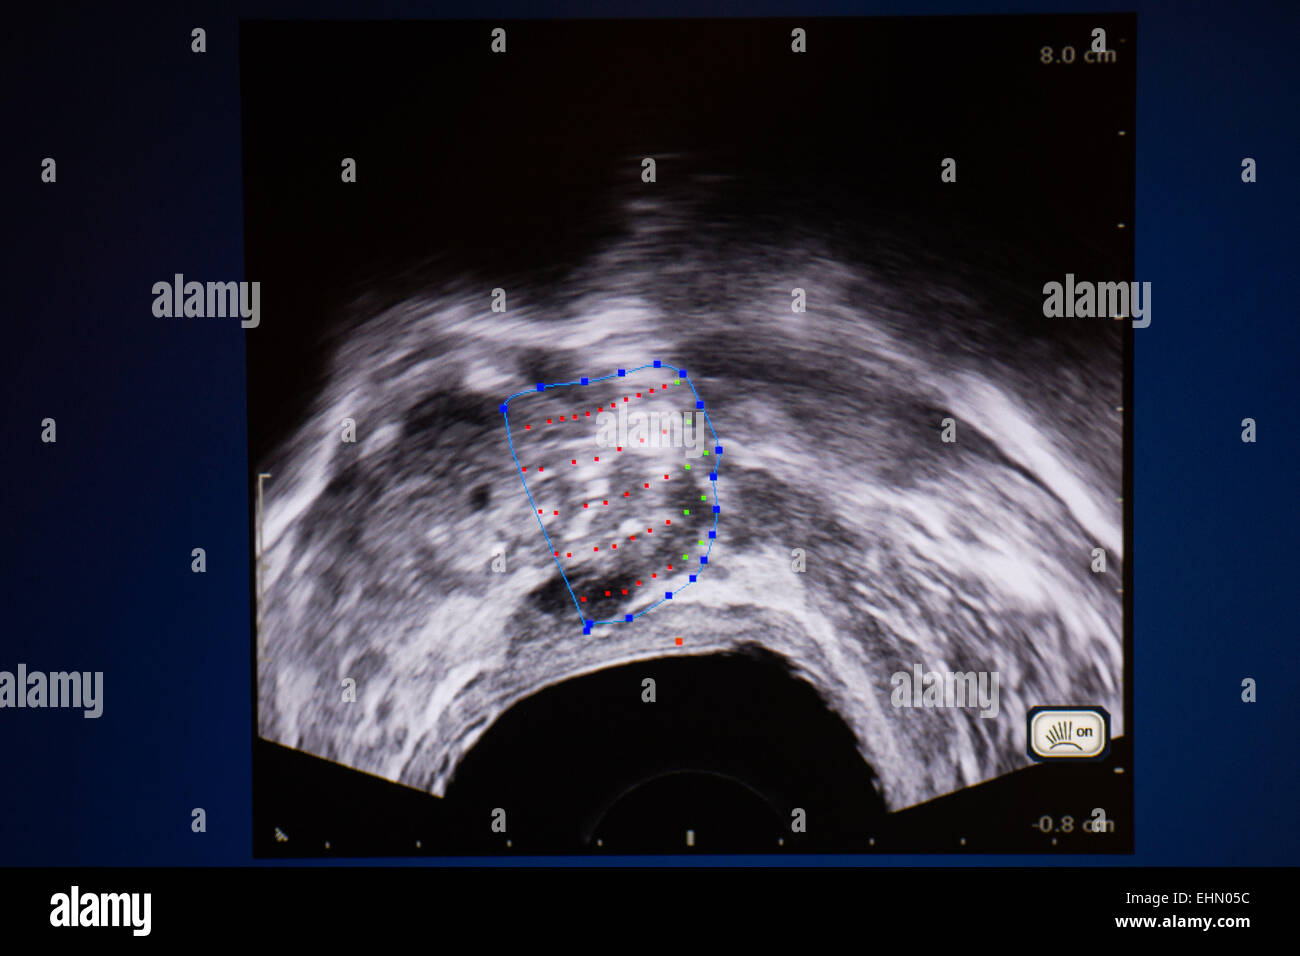 Treatment of prostatic cancer by high intensity focus ultrasound (Focal-One). Montsouris institut, Paris, France. - Stock Image